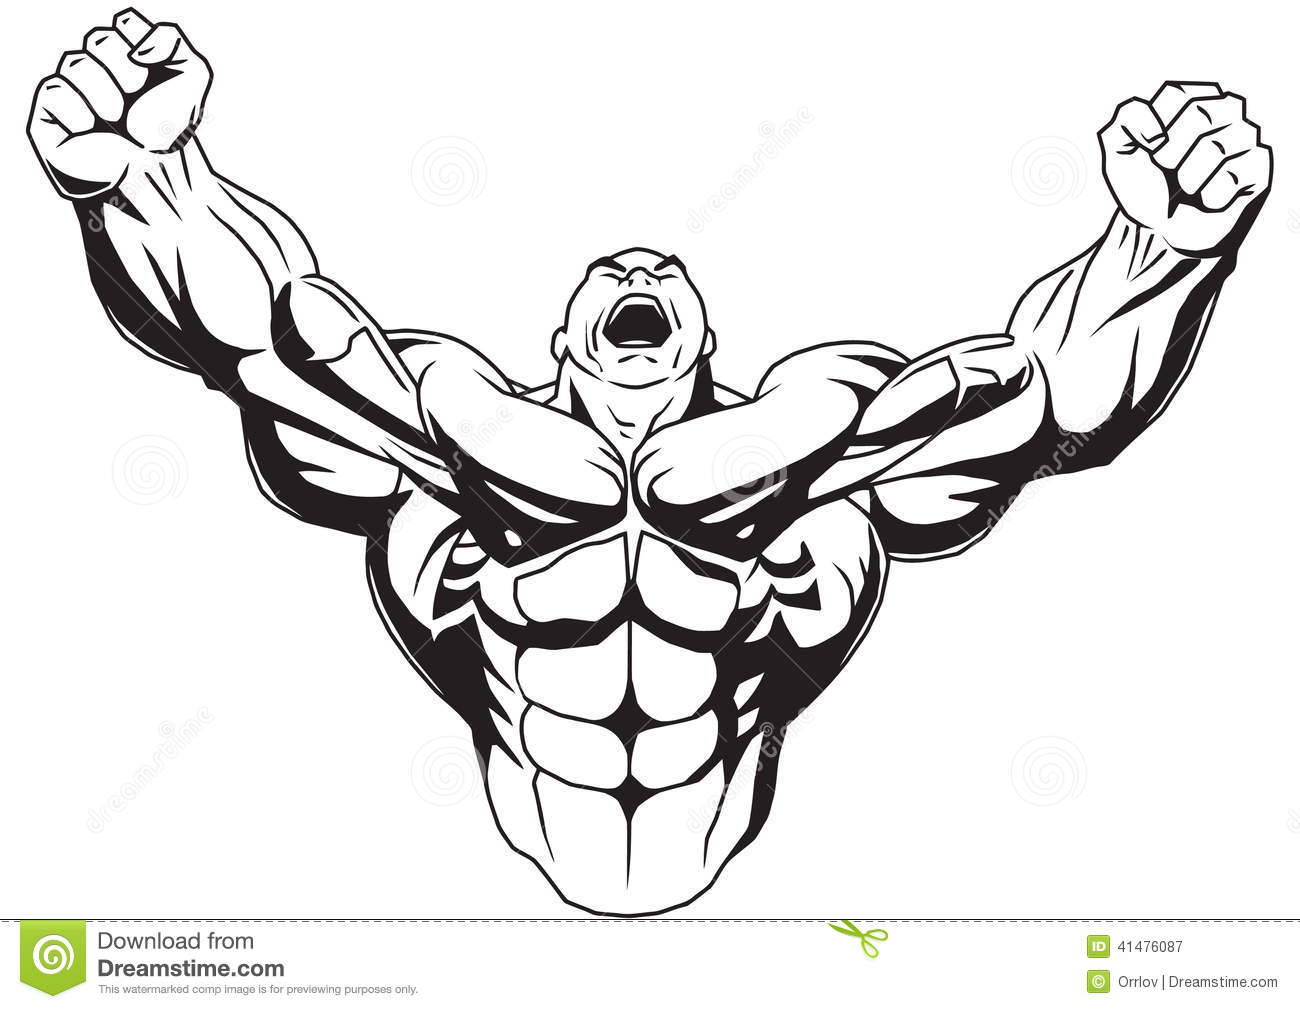 Cartoon Muscle Arm Clipart